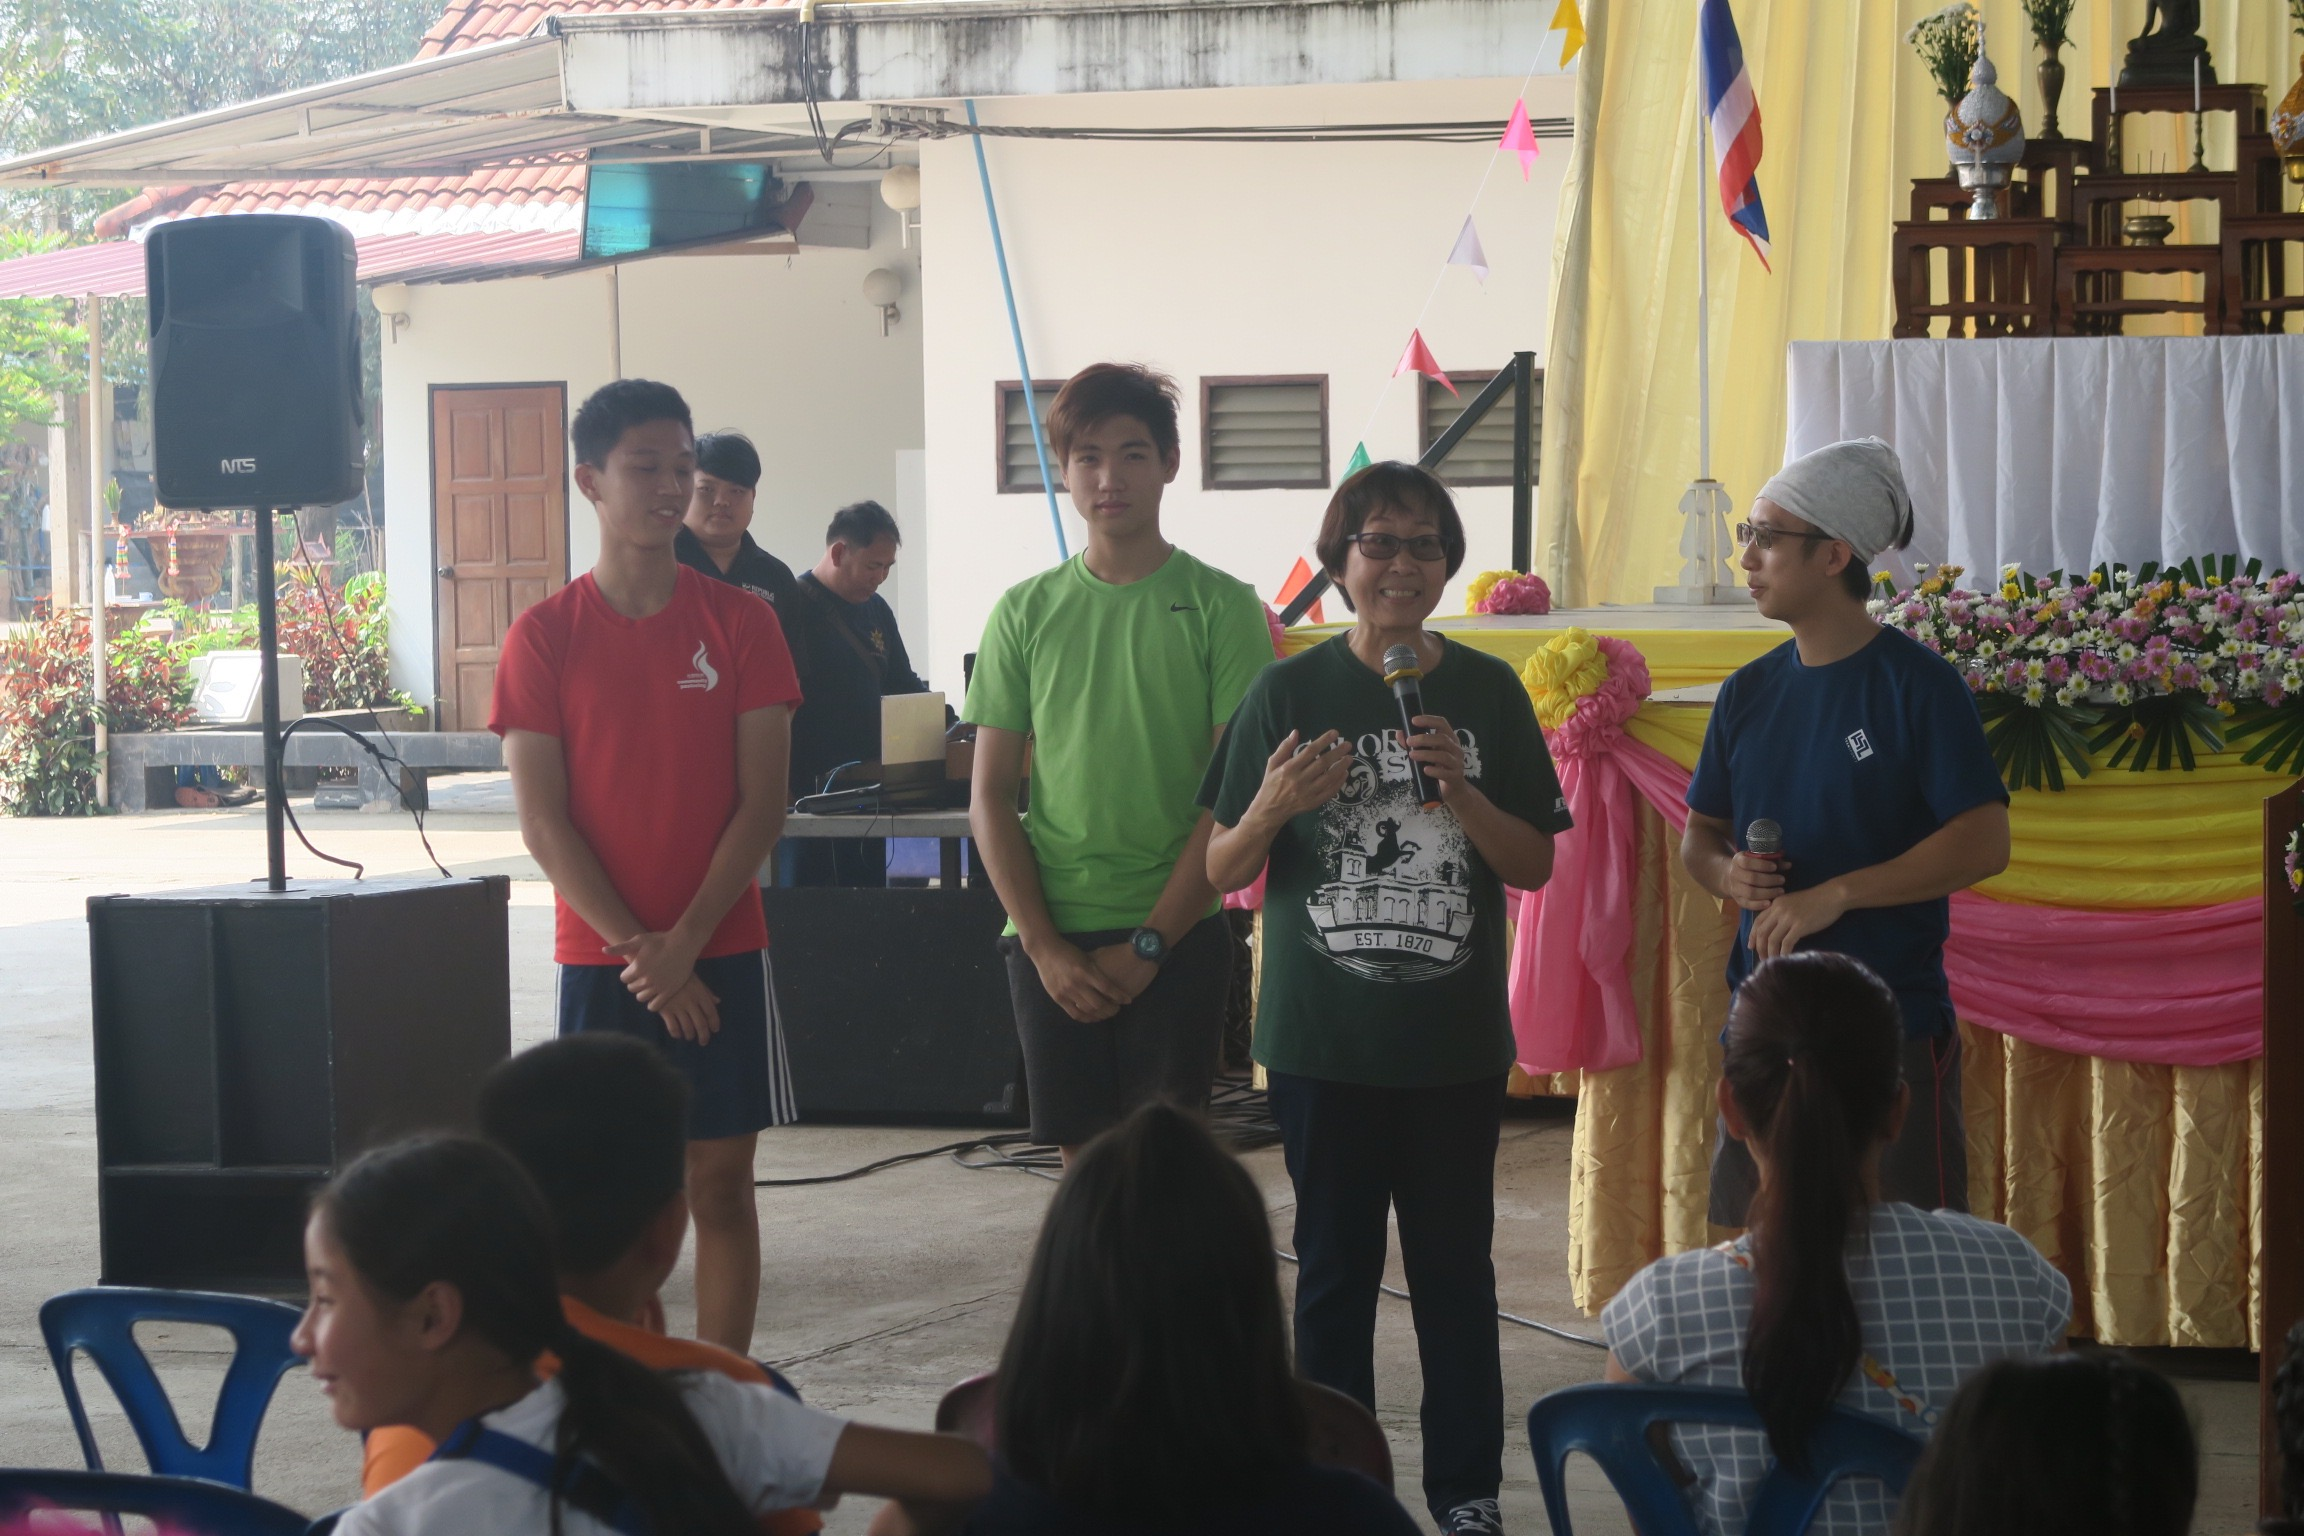 Preparing a skit on the gospel at a community carnival.